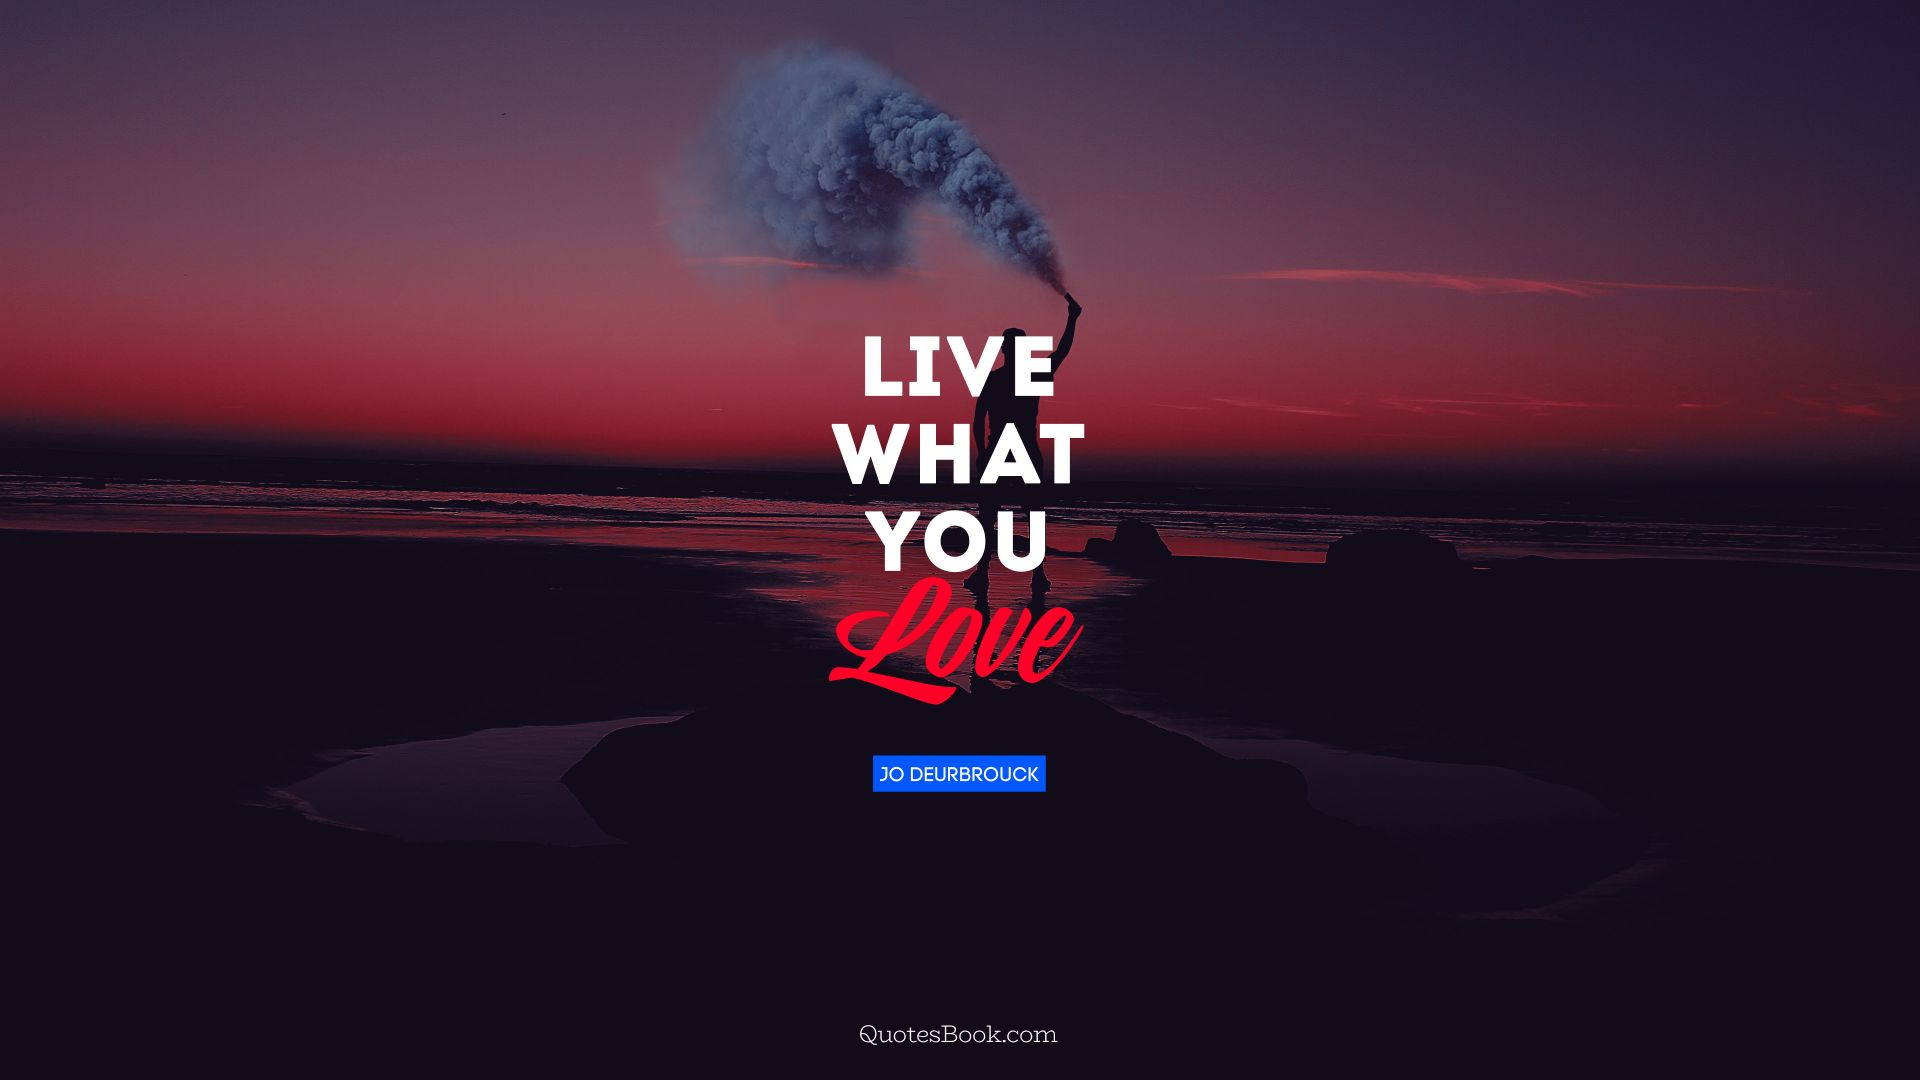 Live what you love. - Quote by Jo Deurbrouck